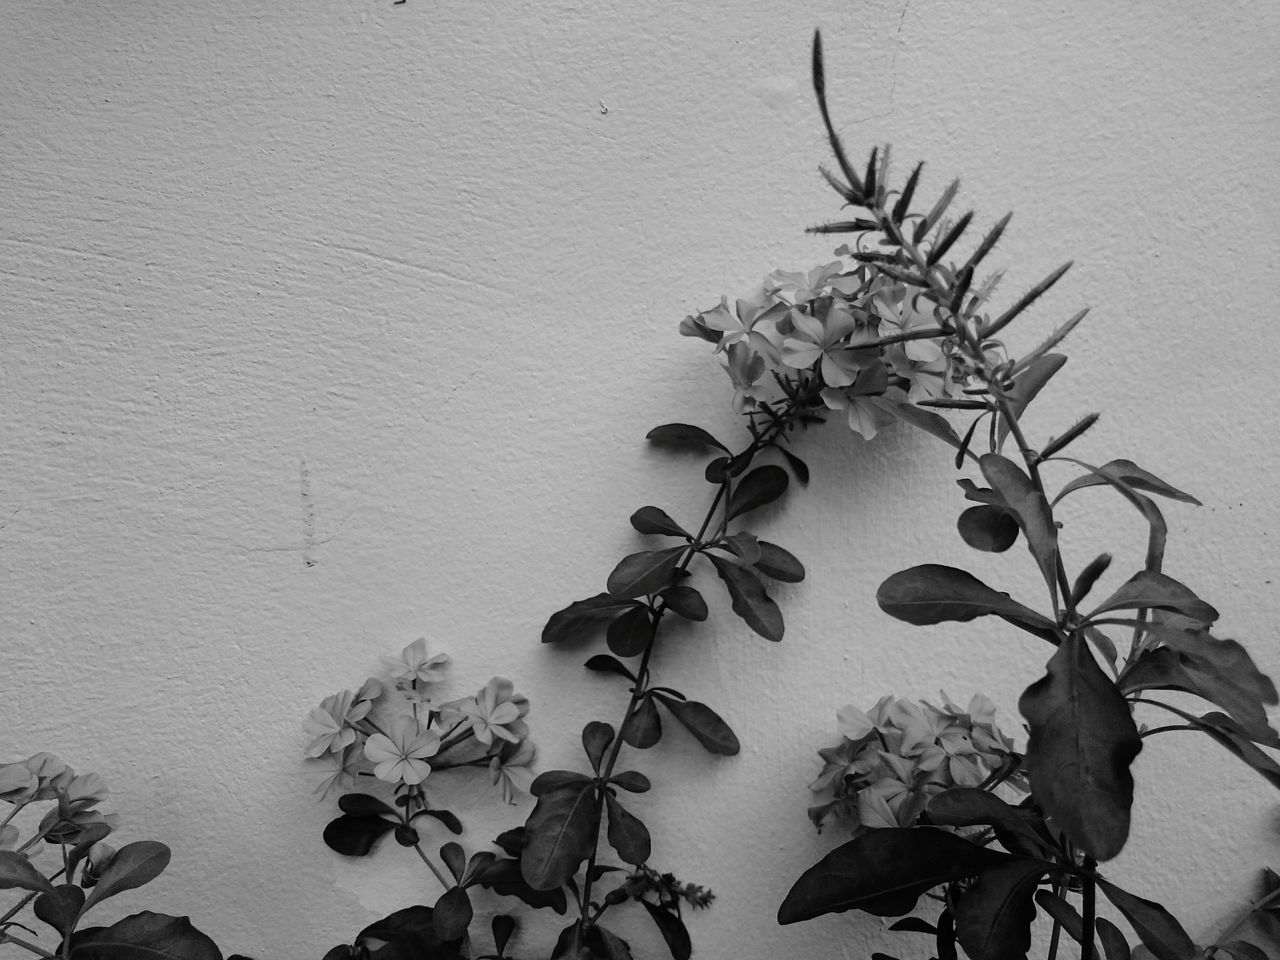 XperiaZ3 Blue Plumbago Blackandwhitephoto Outdoor Nature Wall Flowers Blackandwhite